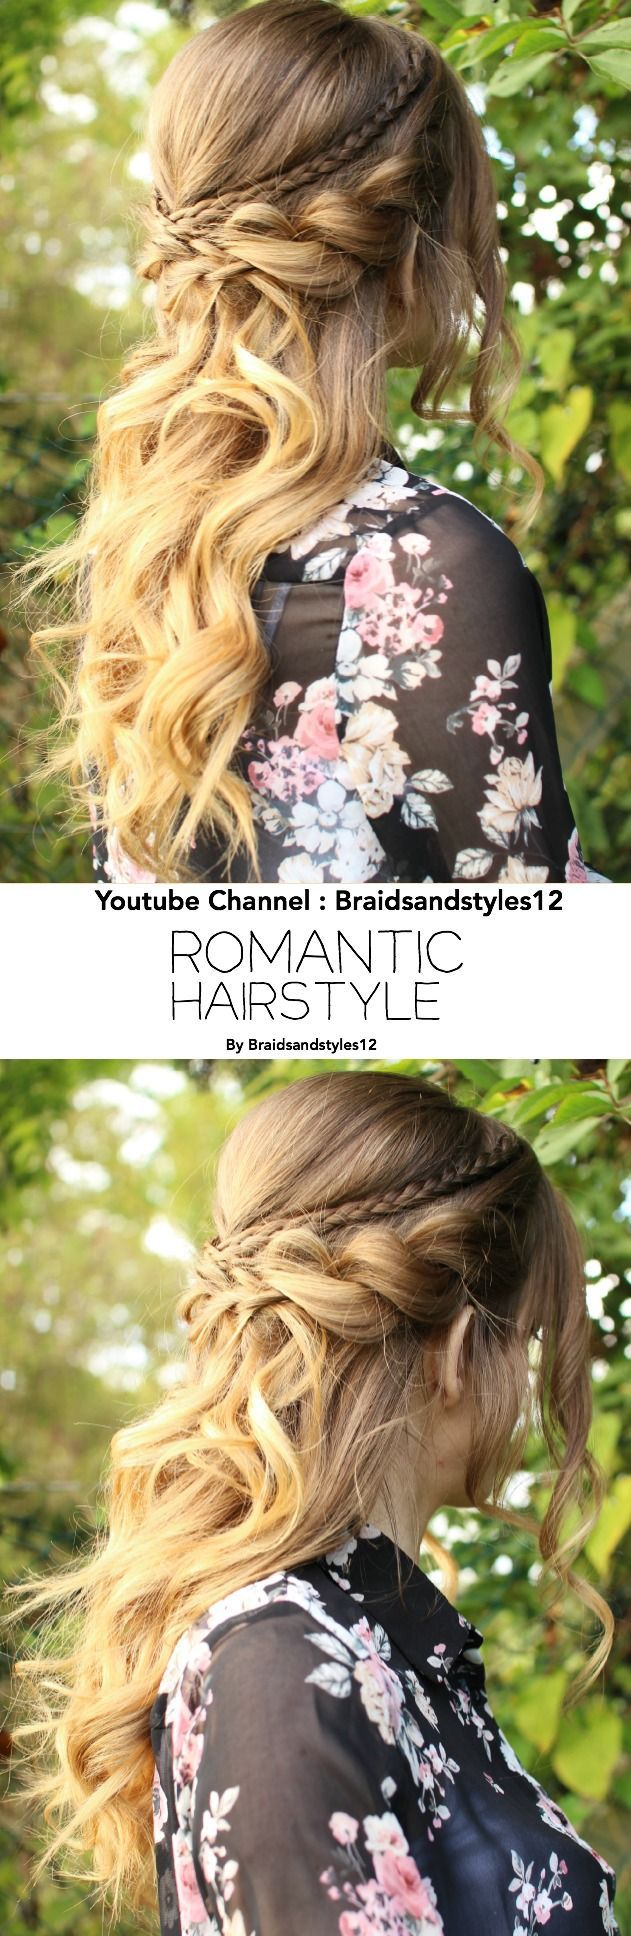 romantic hairstyles for a date evening out find more hairstyles